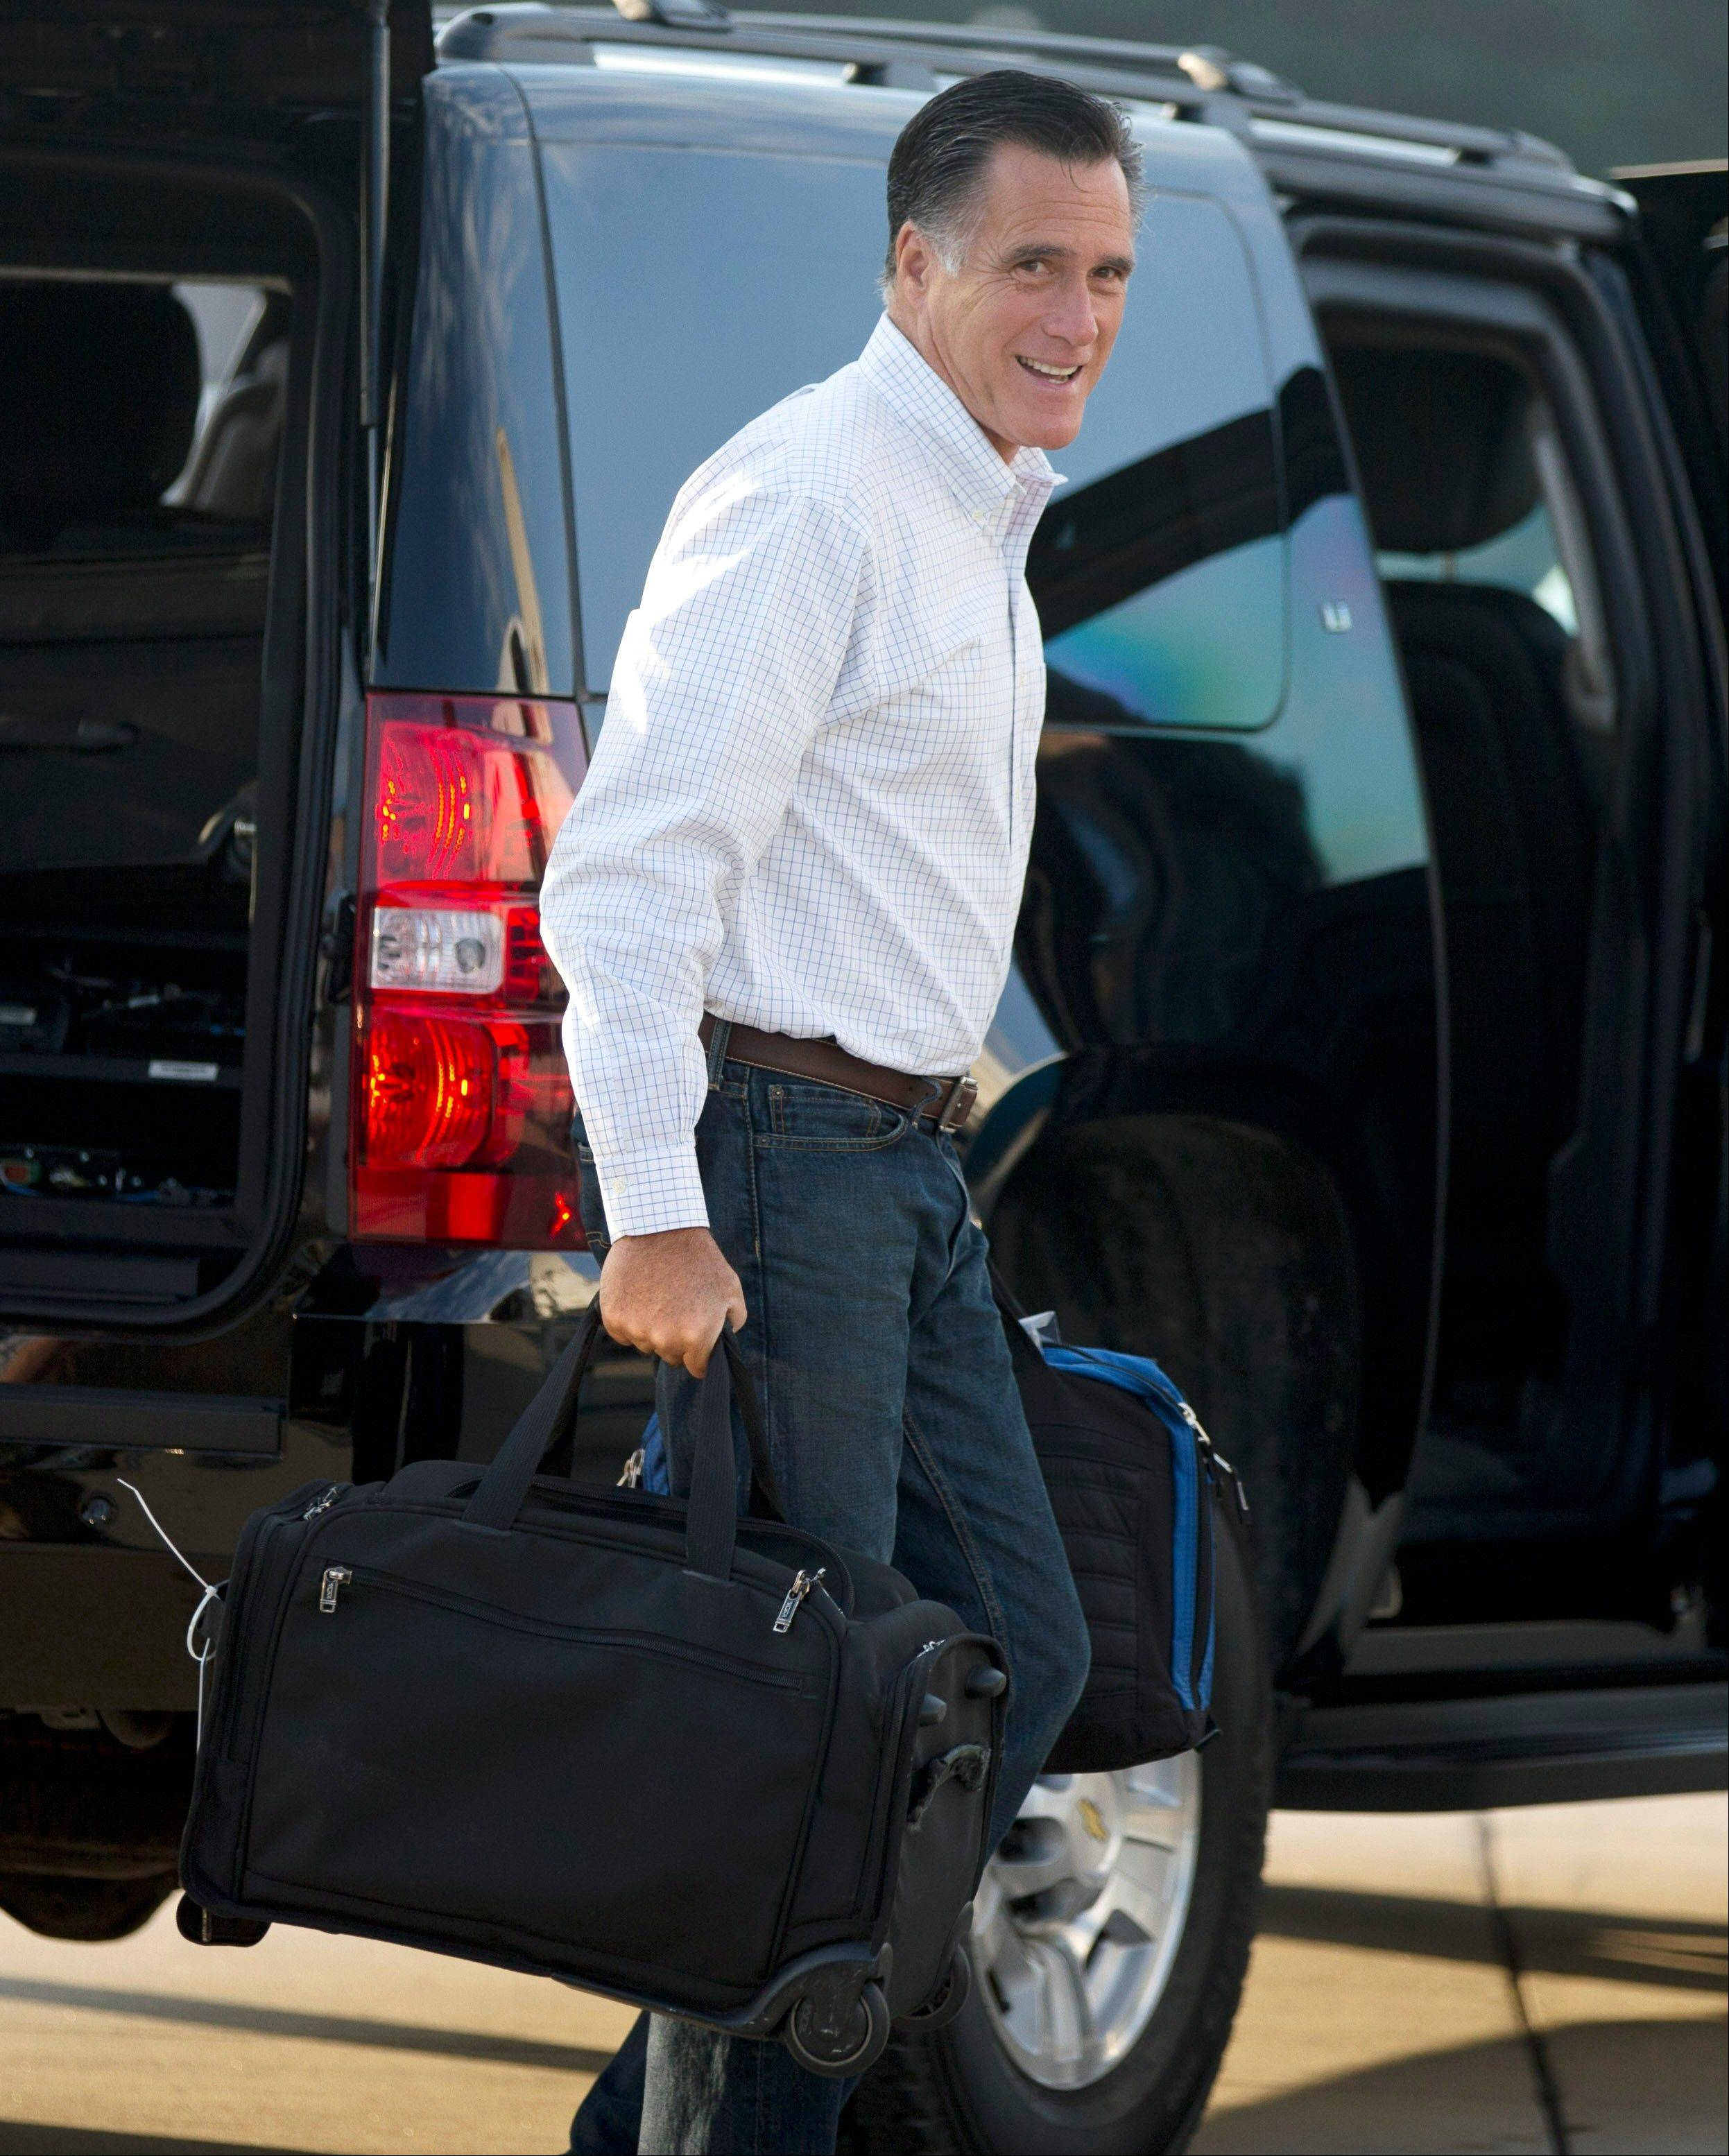 Republican presidential candidate, former Massachusetts Gov. Mitt Romney boards his campaign plane for an event in Iowa on Friday, Sept. 7, 2012 in Portsmouth, N.H.